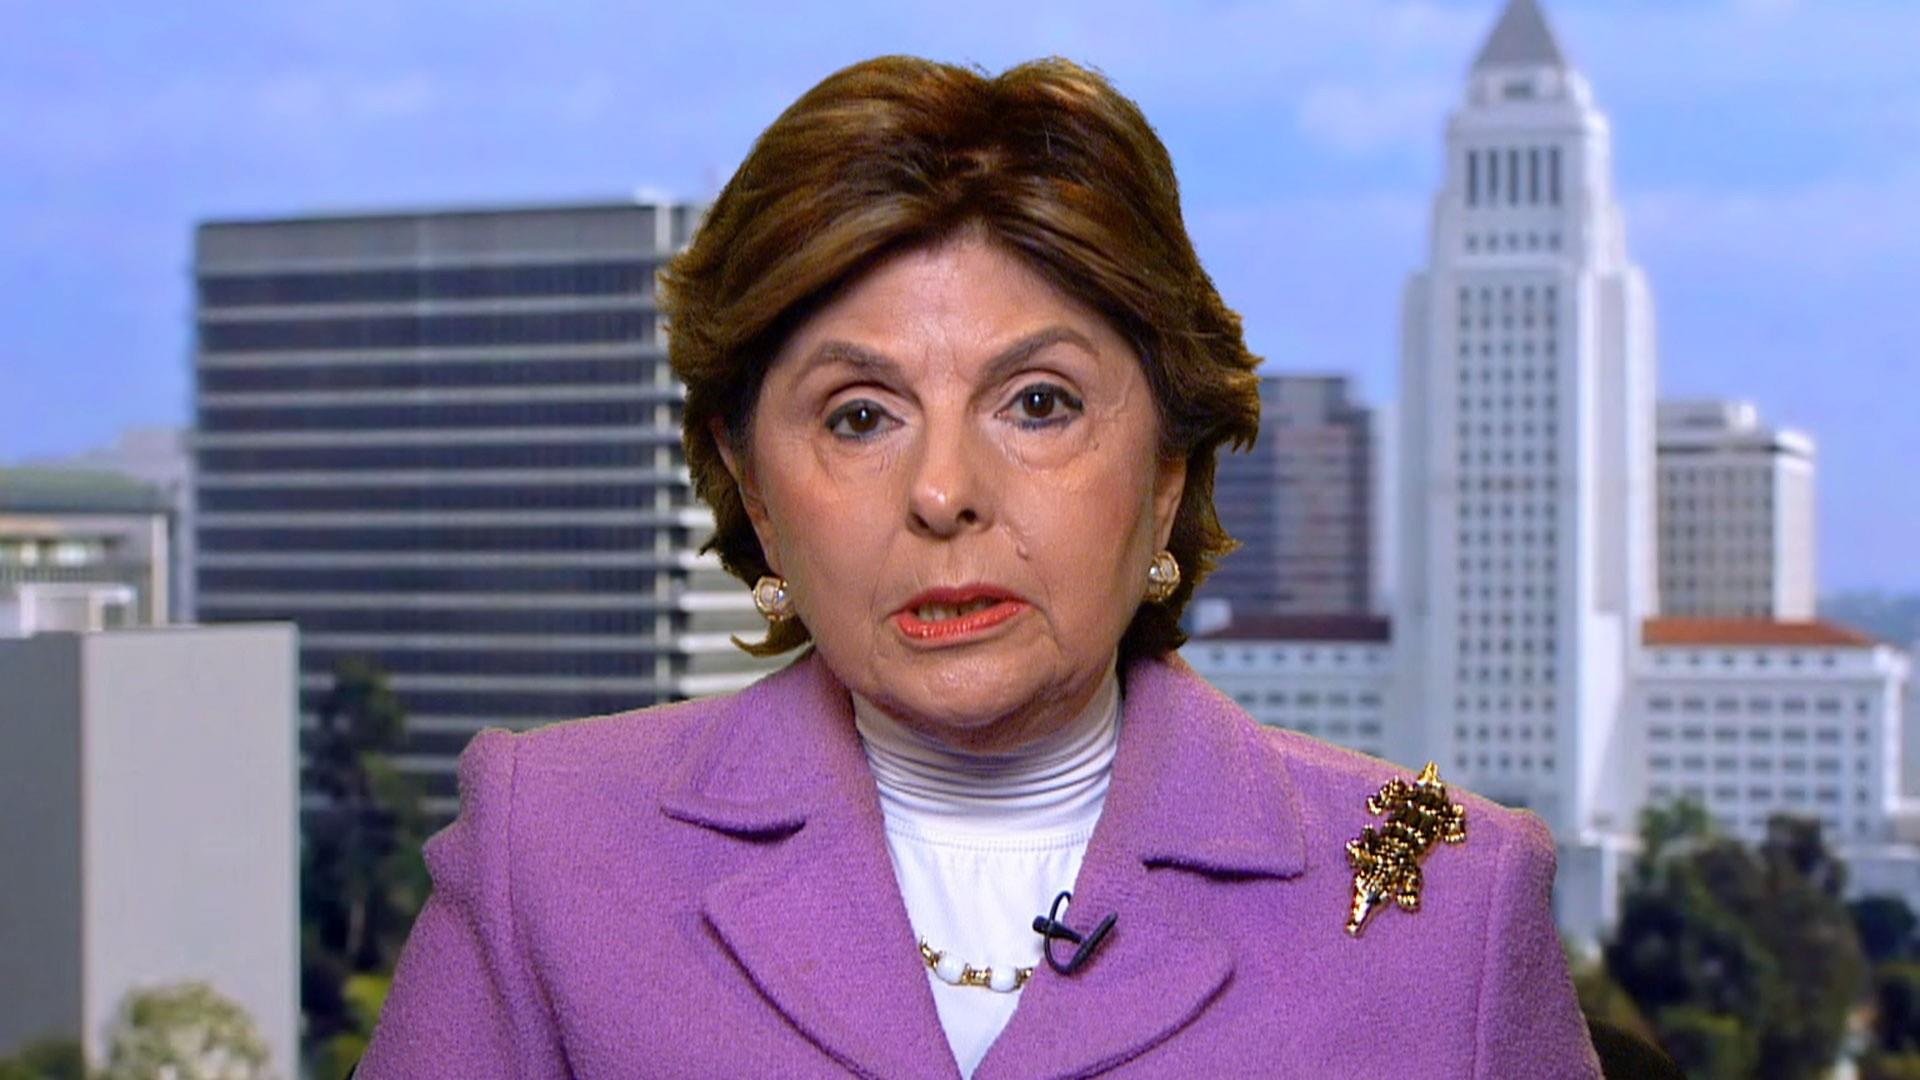 Gloria Allred says Epstein accusers are in shock, 'feeling sick' over his  suicide